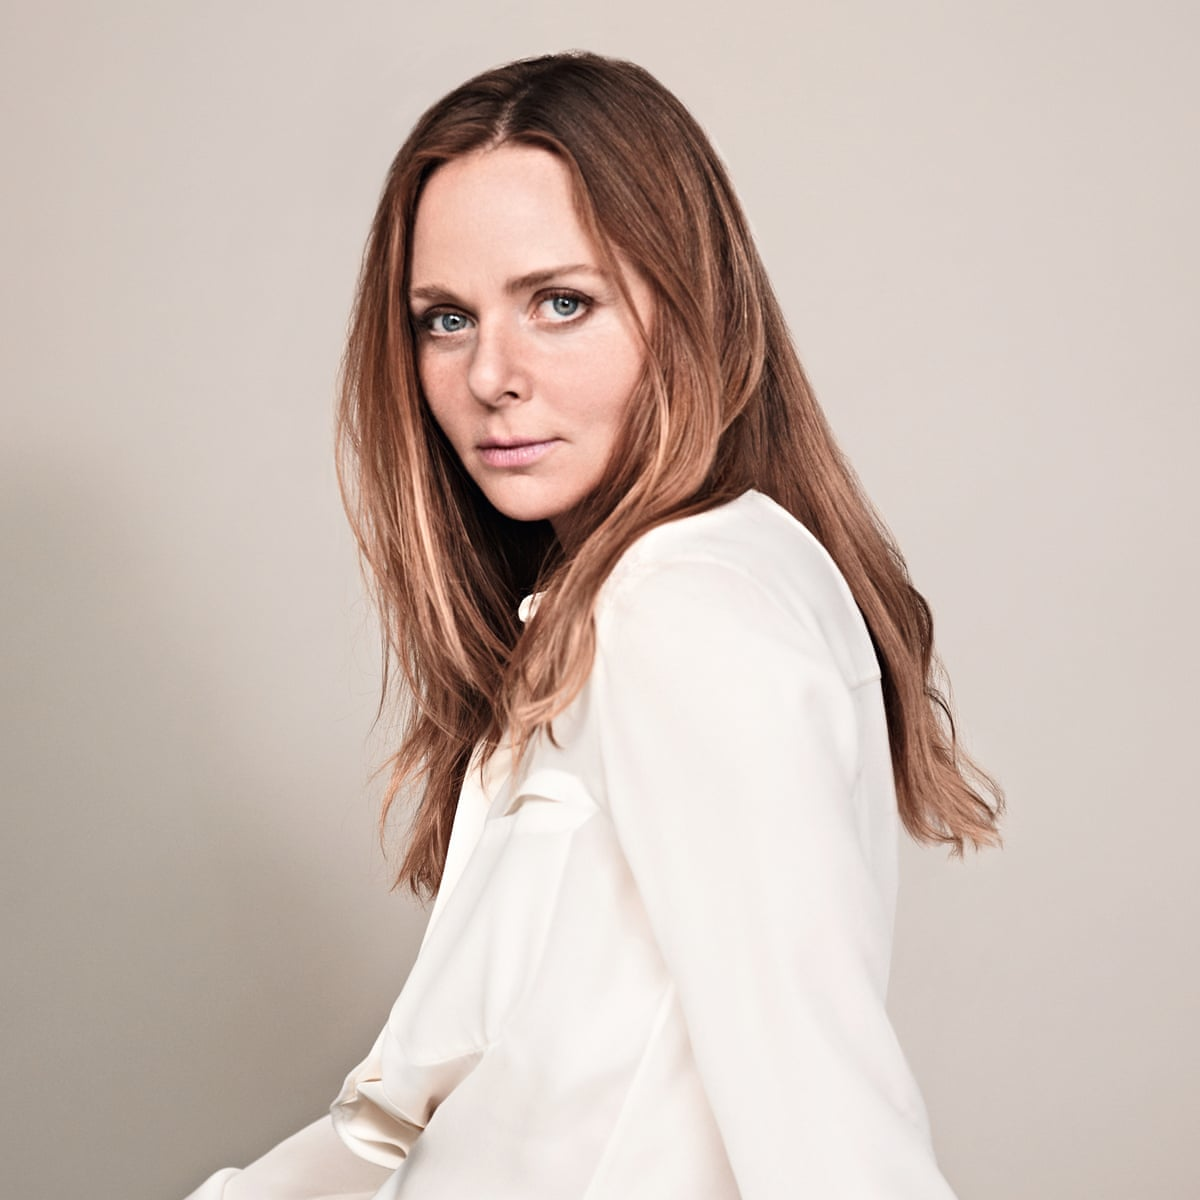 Stella Mccartney Only 1 Of Clothing Is Recycled What Are We Doing Stella Mccartney The Guardian